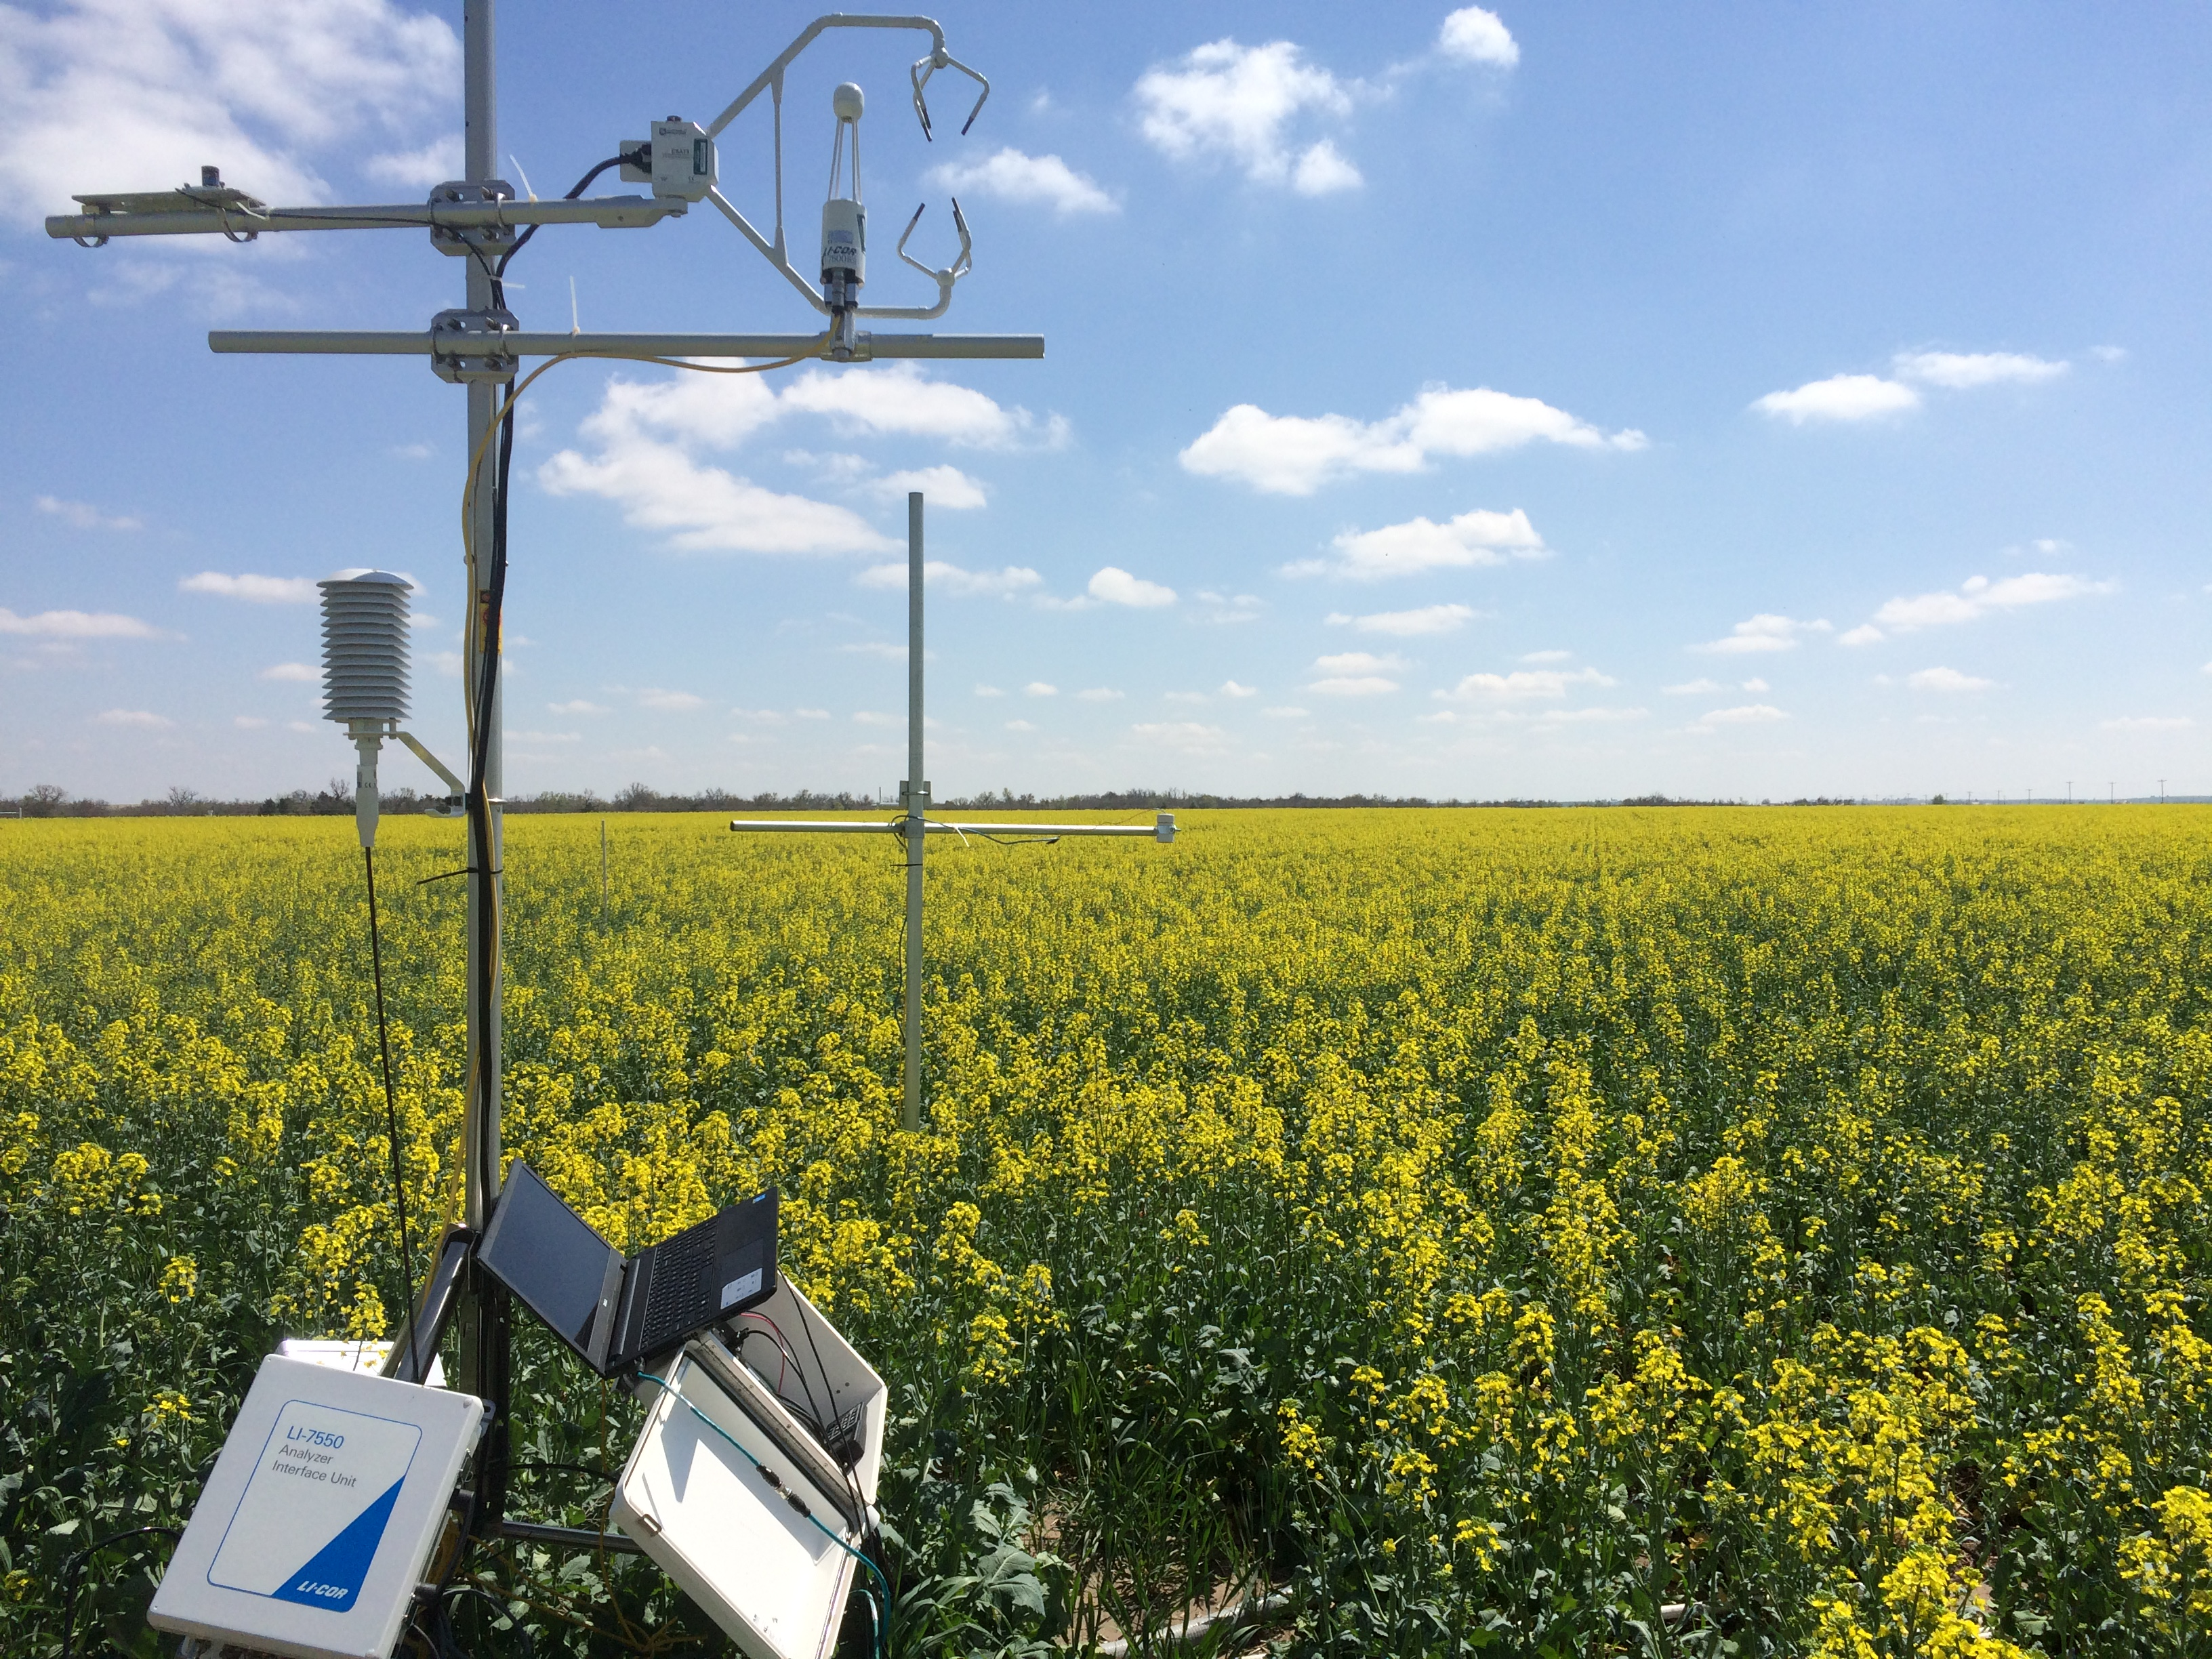 SP canola in common experiment